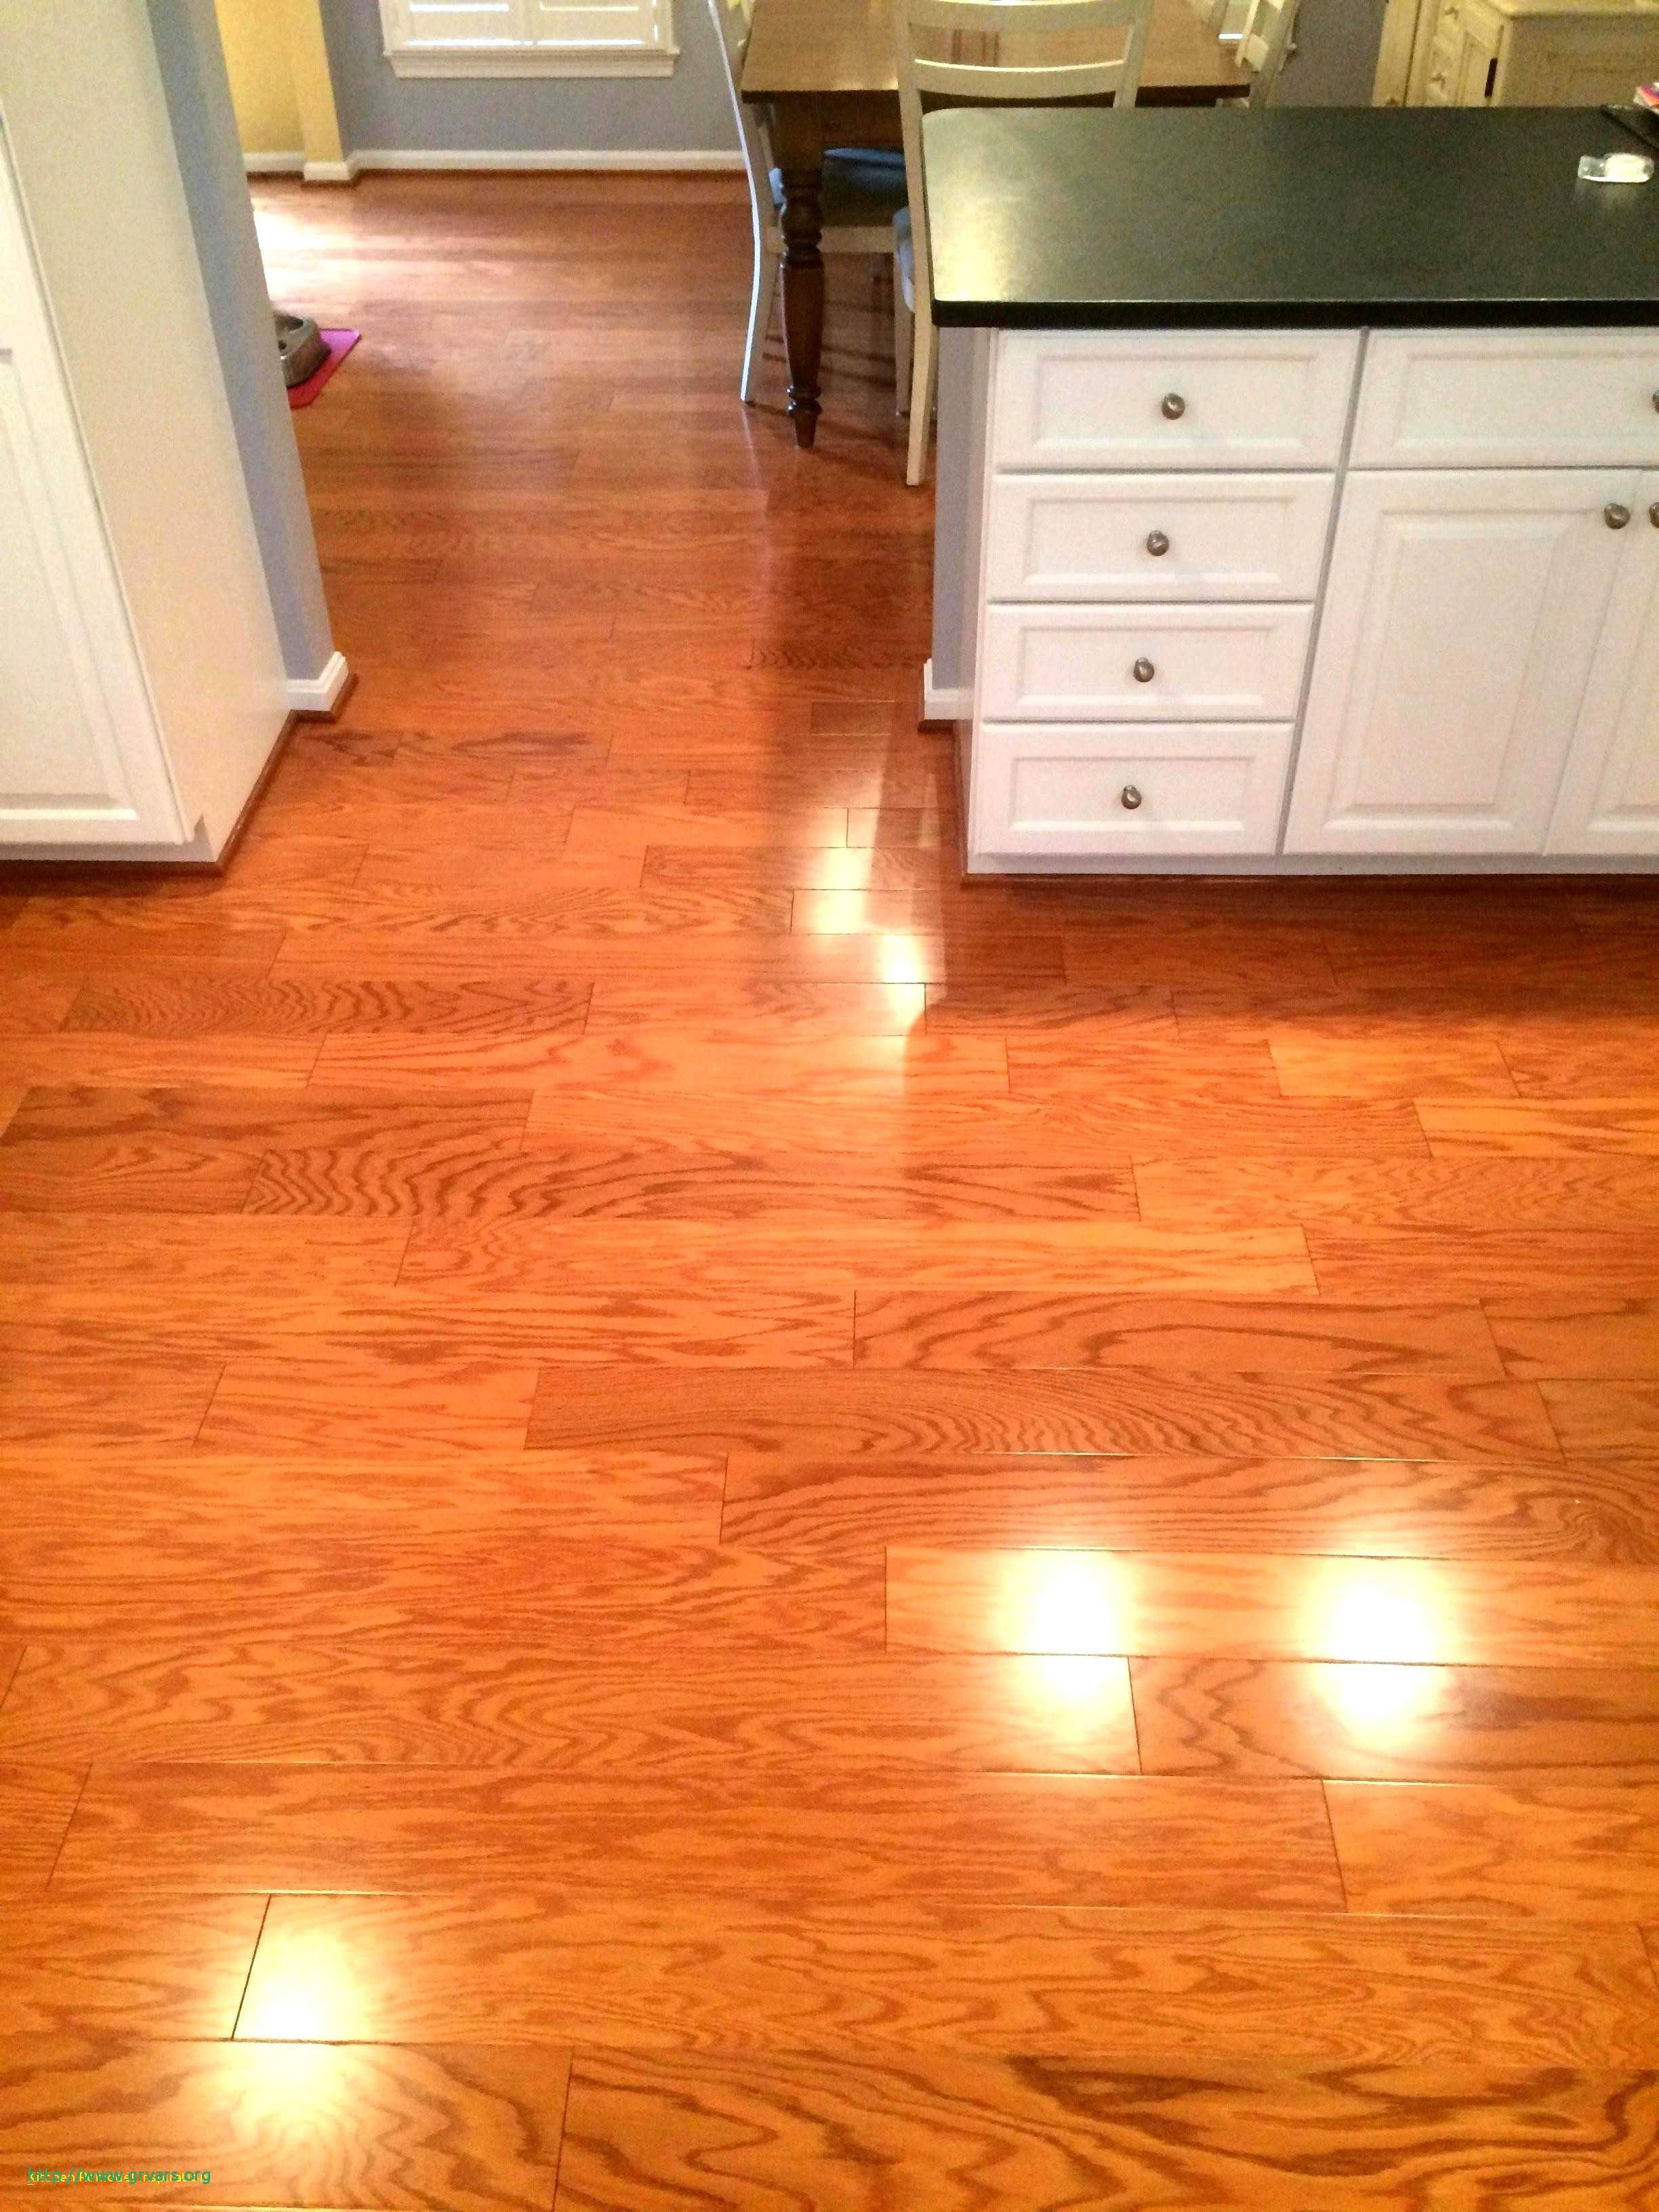 hardwood flooring wholesale louisville ky of 10 discontinued hardwood flooring for sale on a budget best for 20 s of the 20 alagant best place to purchase laminate flooring